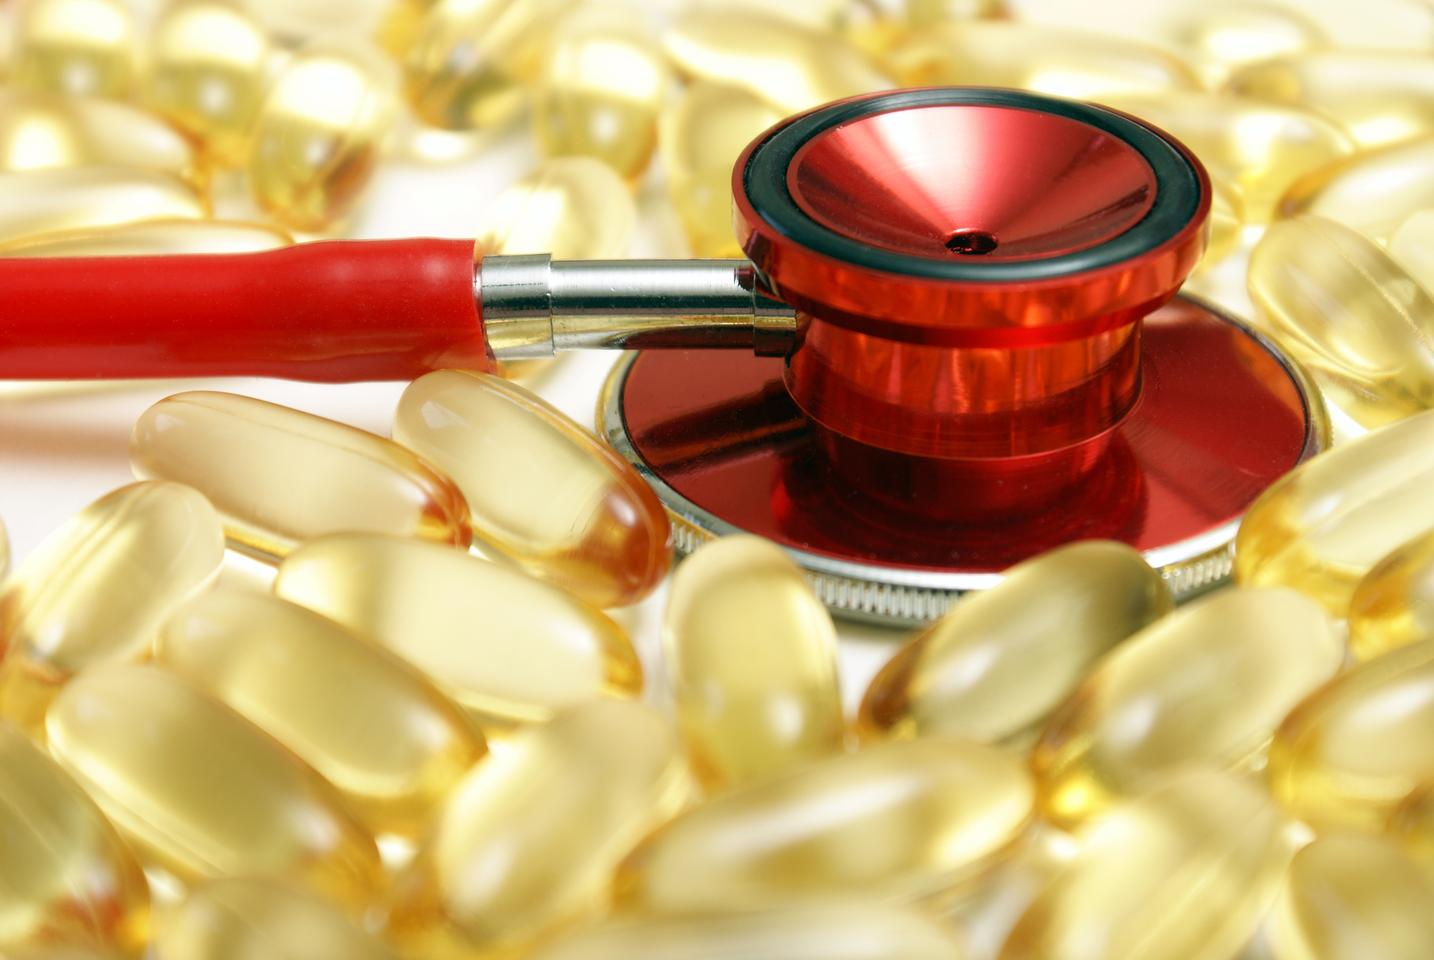 A clinical trial failure comes after a similar omega-3 formulation was approved by the FDA in December last year